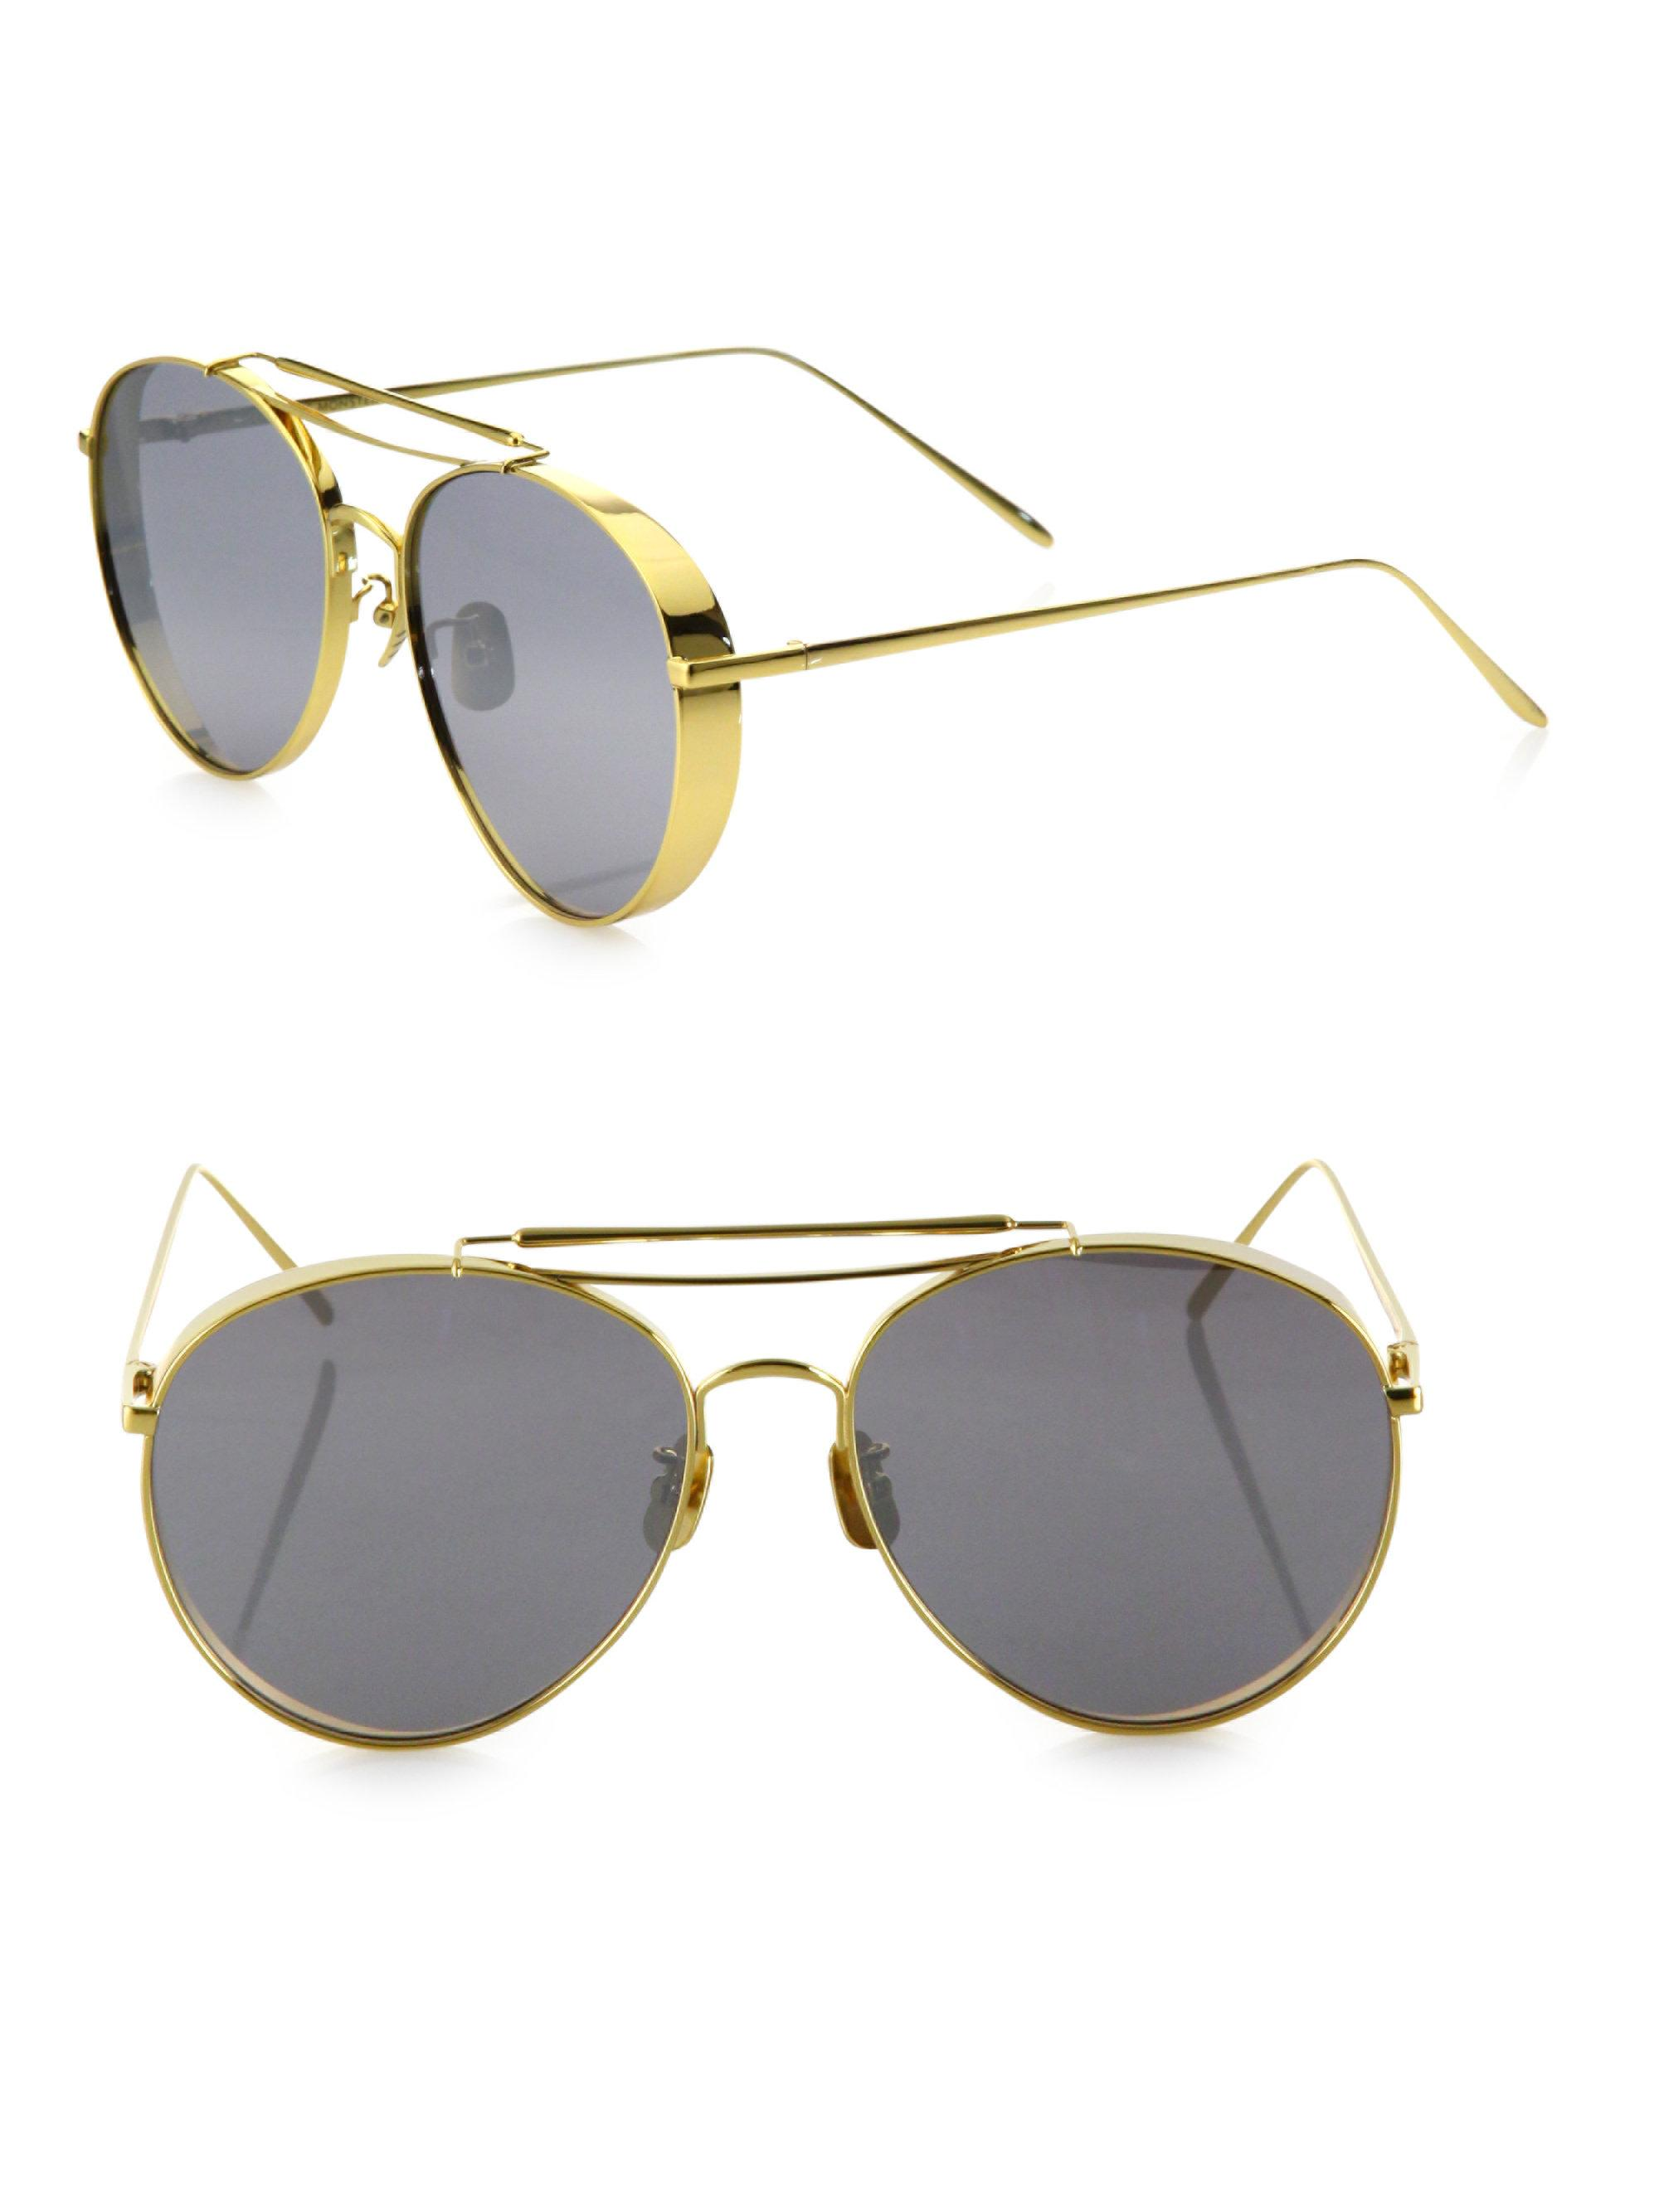 0d154f1c343b Lyst - Gentle Monster Big Bully 55mm Rounded Aviator Sunglasses in ...